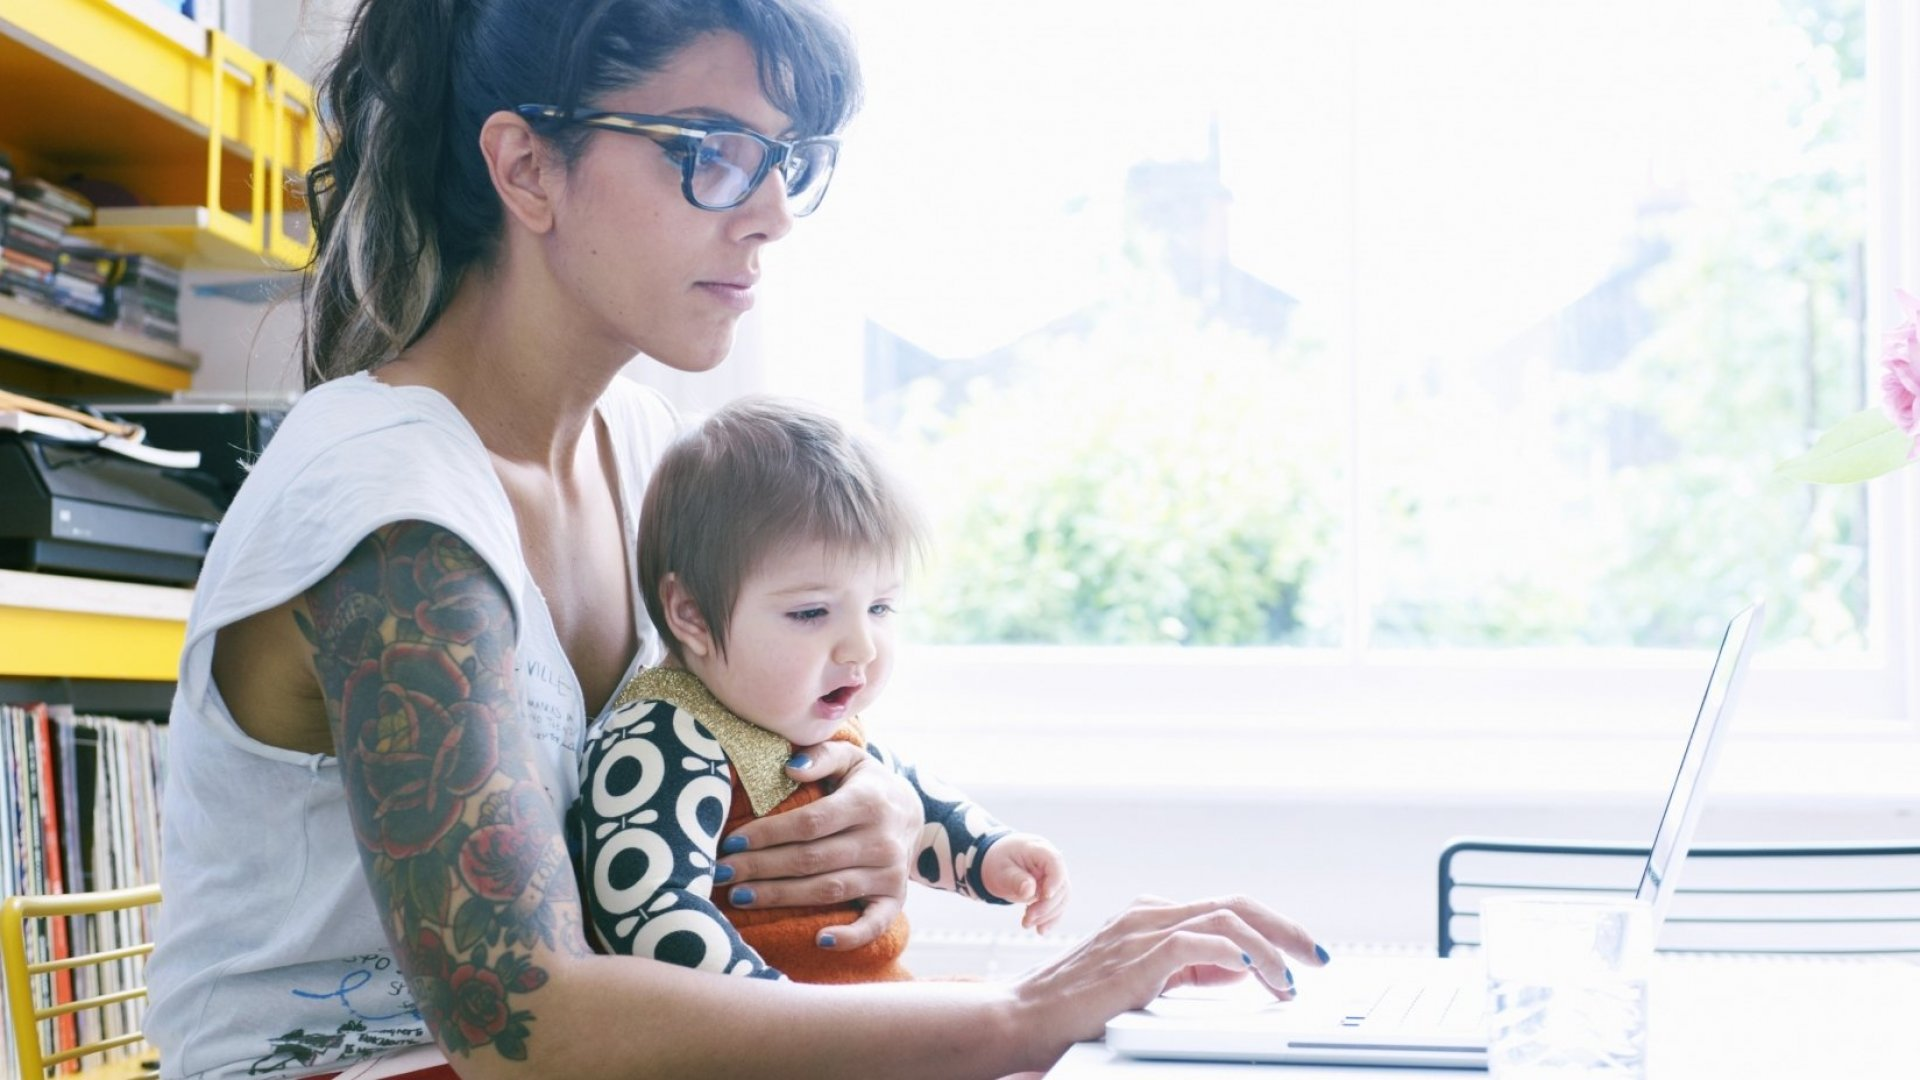 The 25 Best Jobs for Work-Life Balance